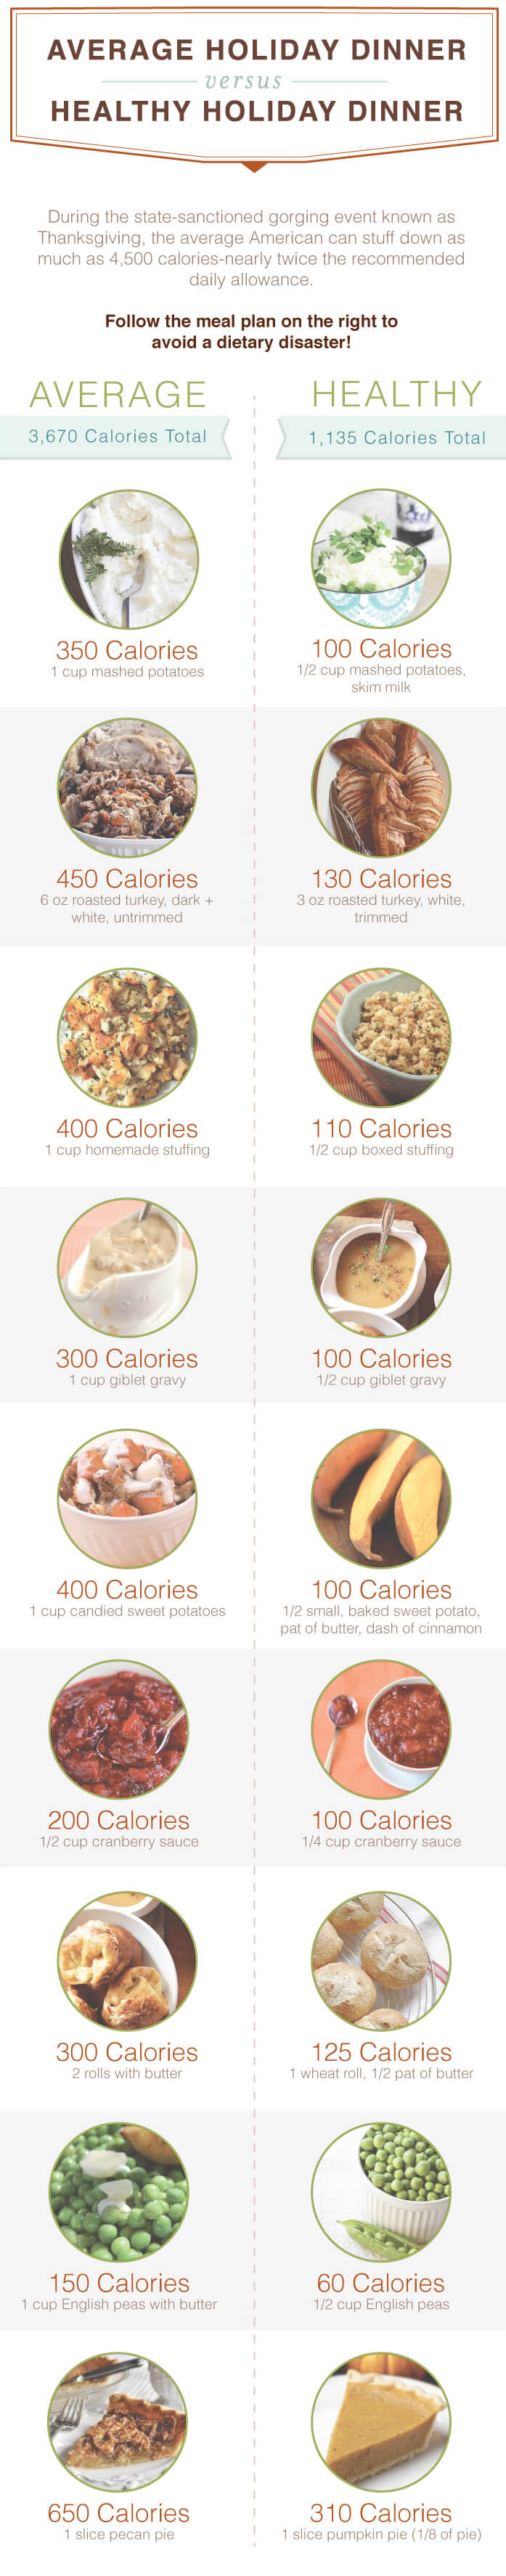 Thanksgiving-Meal-Plan-Overeating